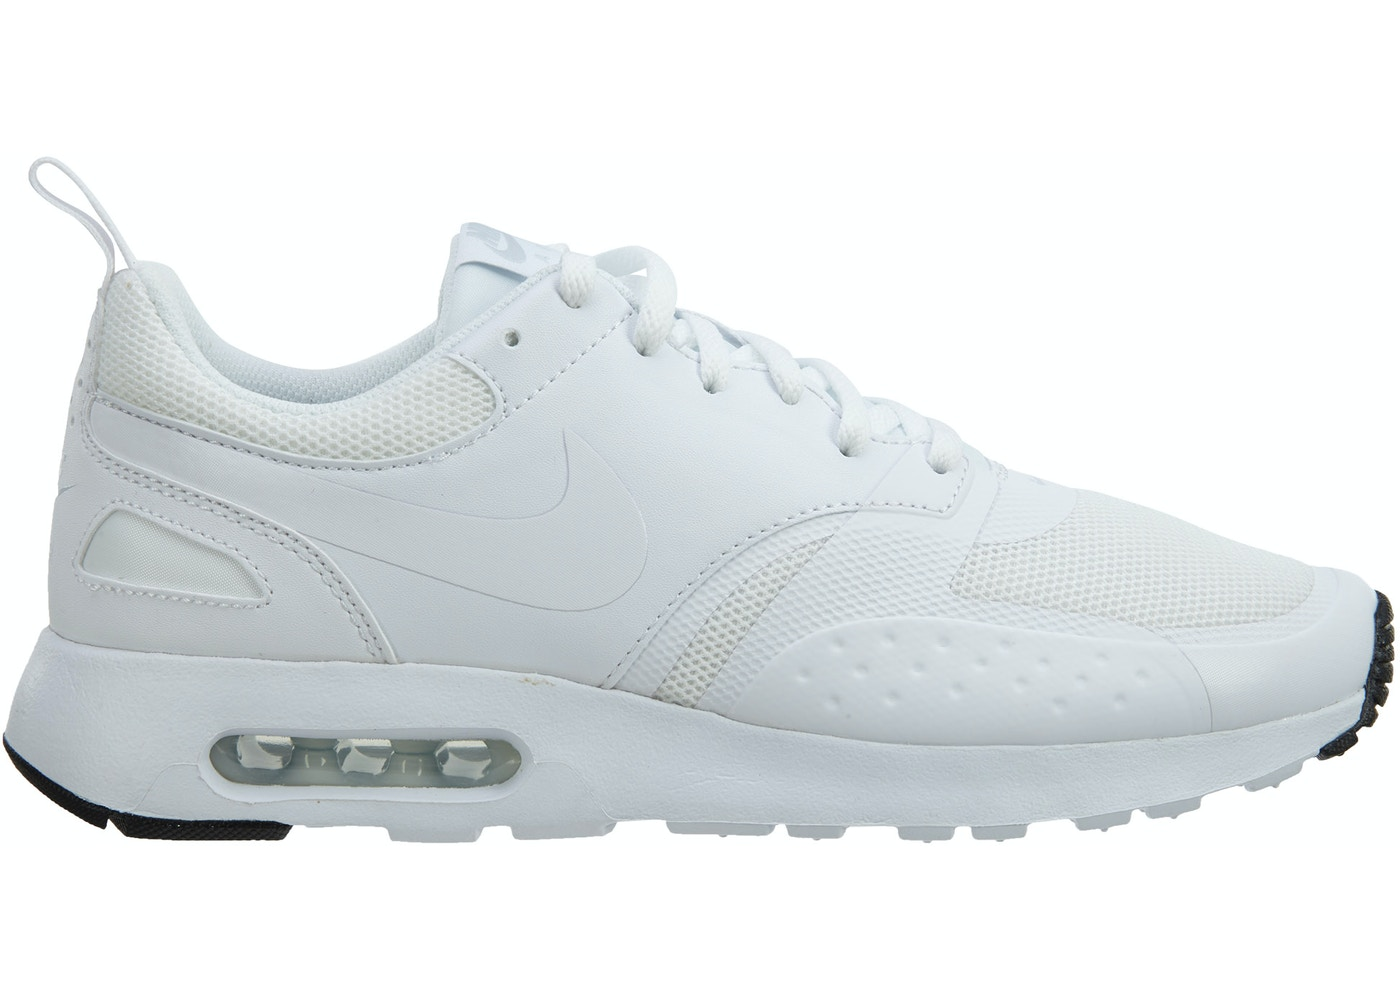 newest 6e951 81b69 Sell. or Ask. Size: 12.5. View All Bids. Nike Air Max Vision White/White-Pure  Platinum